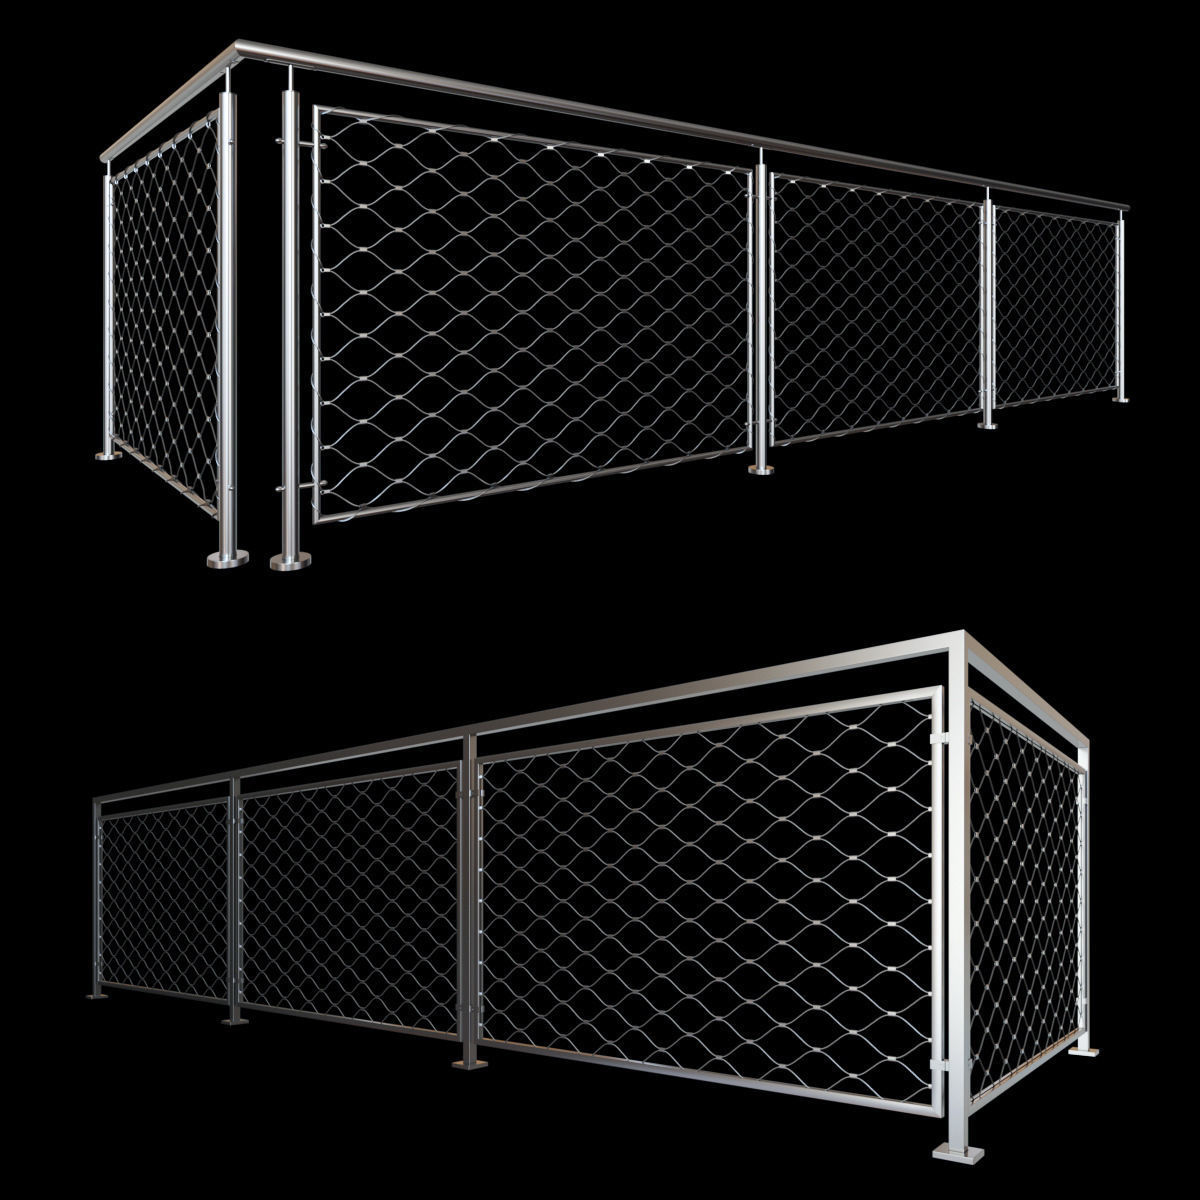 Steel railing with rope system